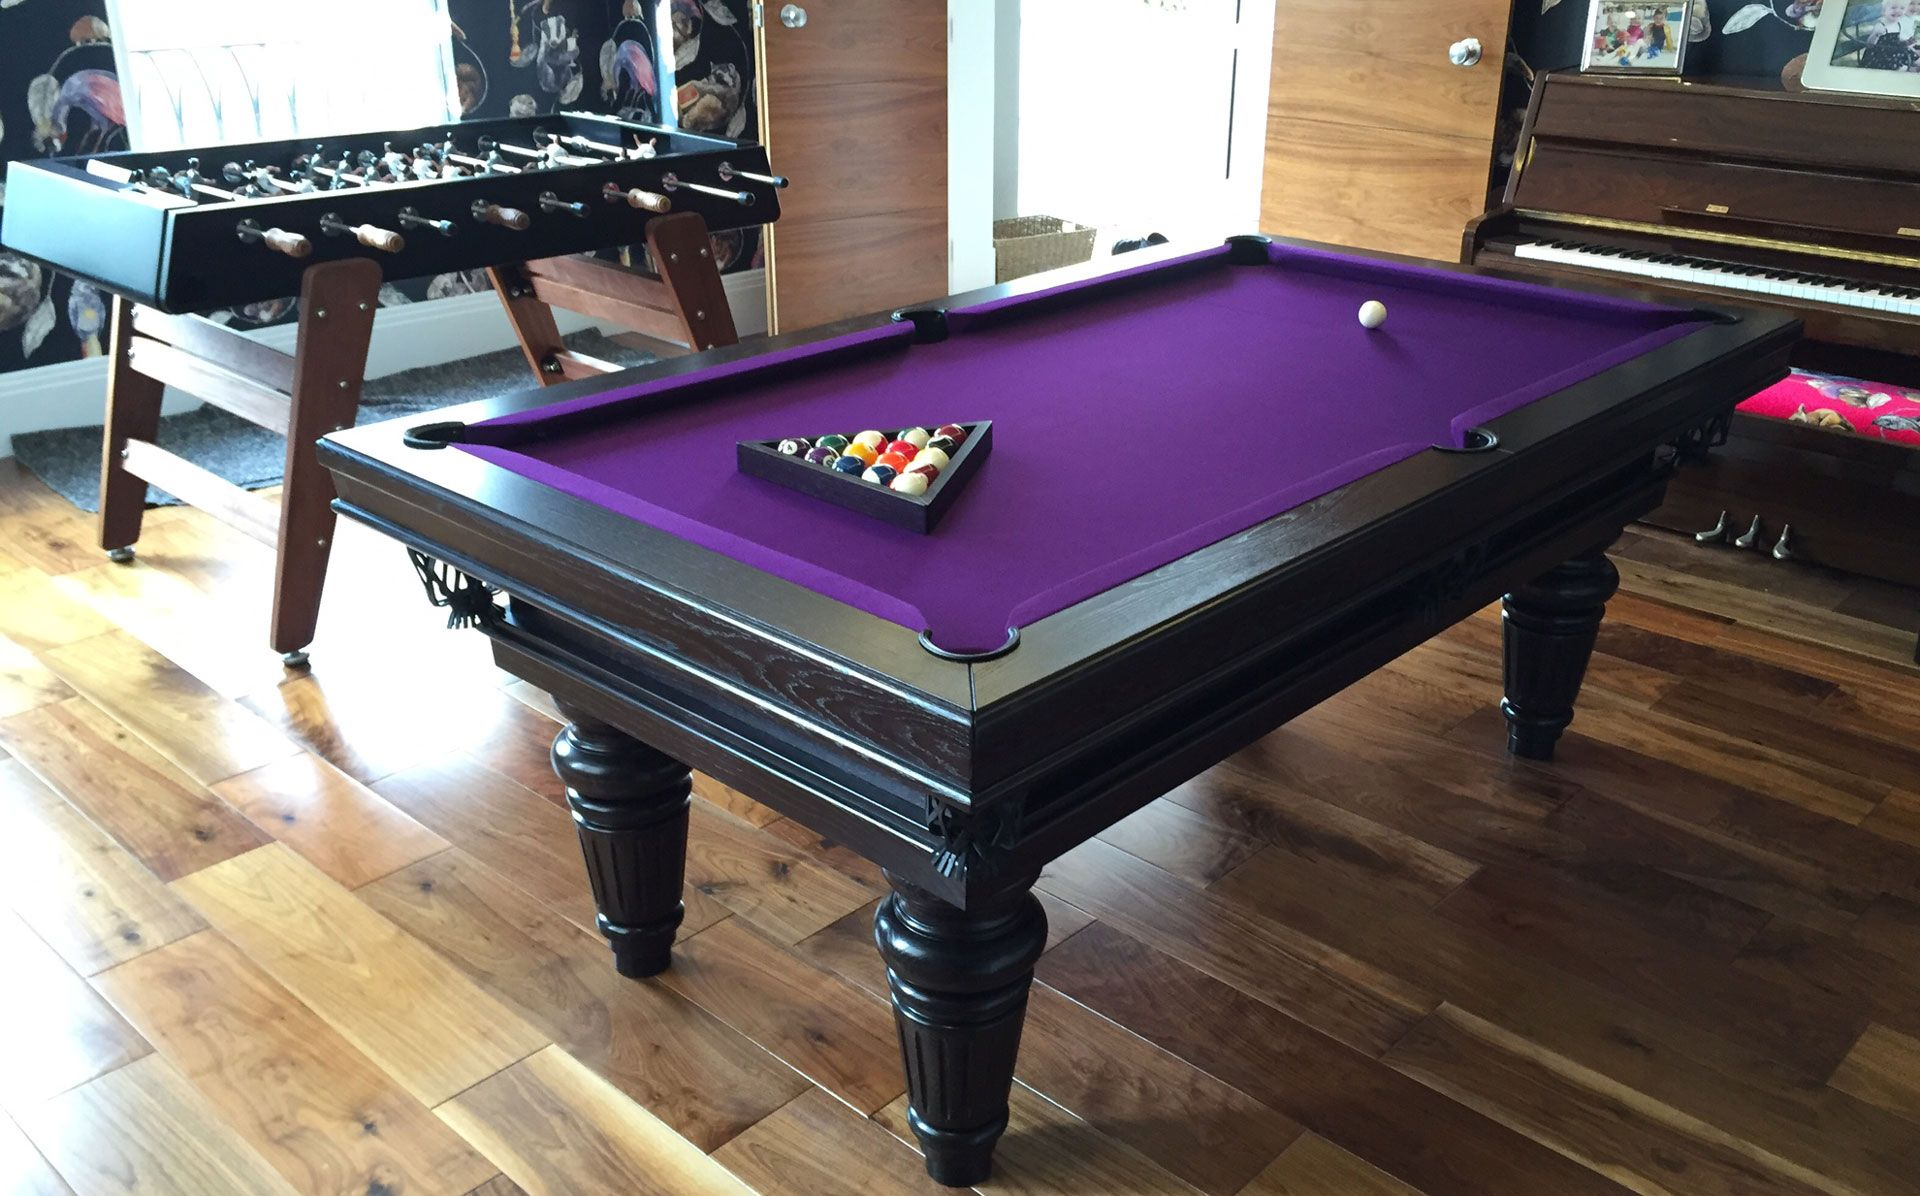 Unique pool tables family room contemporary with bold pool table cool - Pool Table Room Best Playing Tables For Amazing Gaming Rooms Bestplayingtables Decoratonideas Homeandecoration Www Homeandecoration